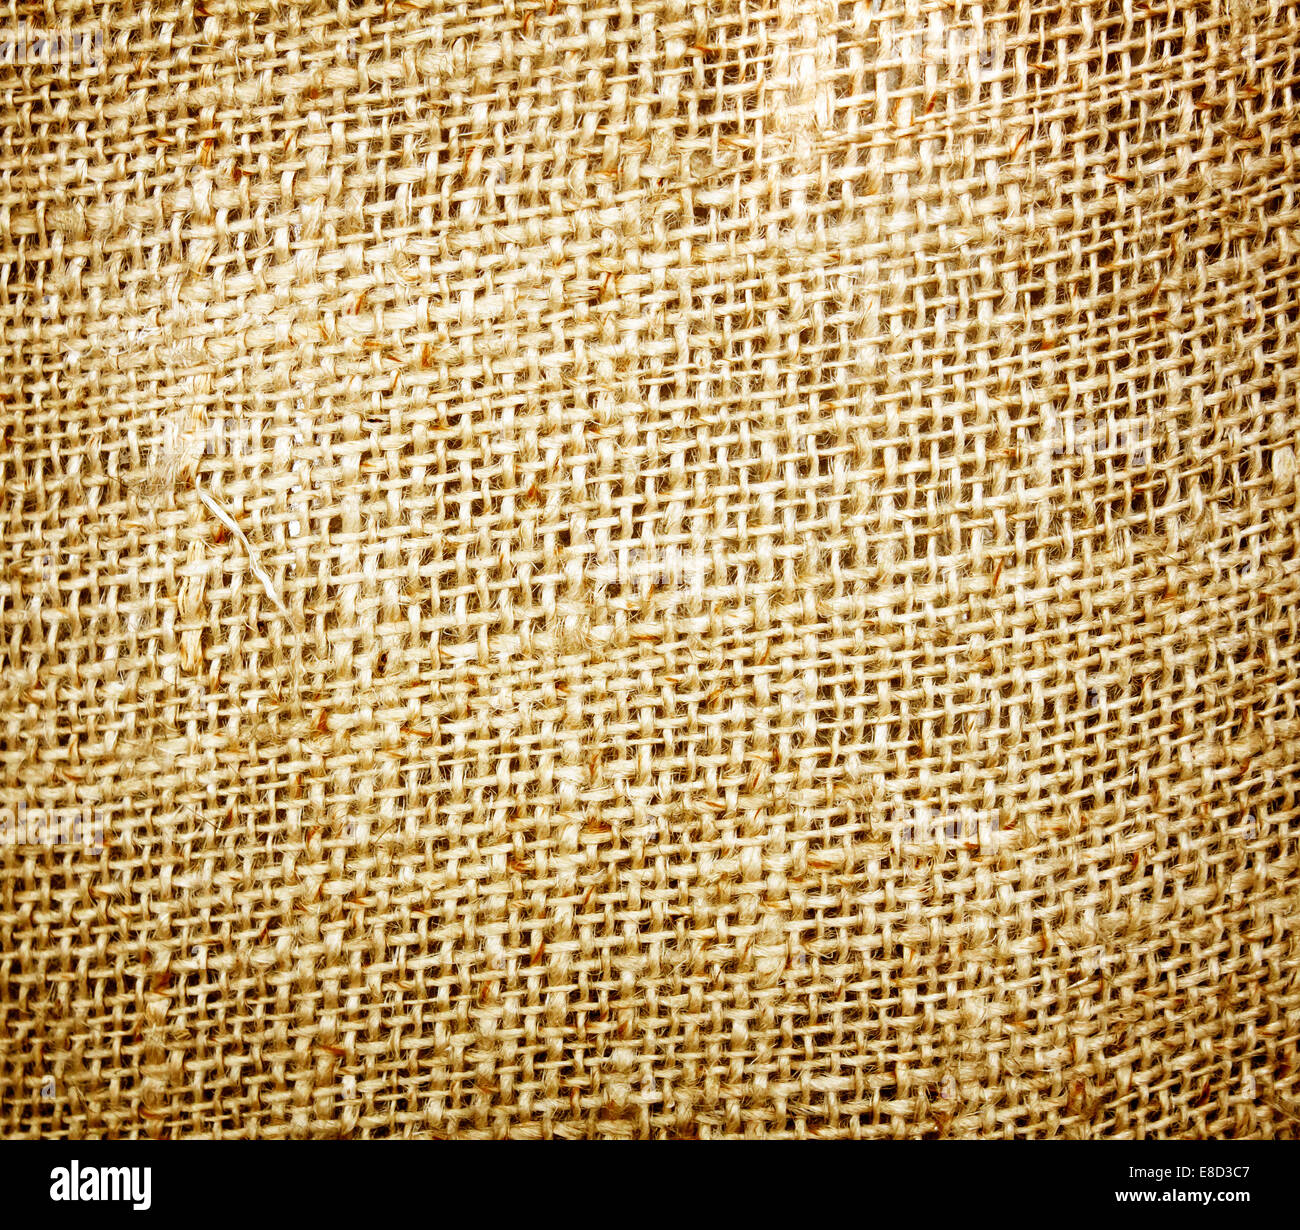 Hessian Hemp Rope Style Textures And Backgrounds Stock Photo Alamy